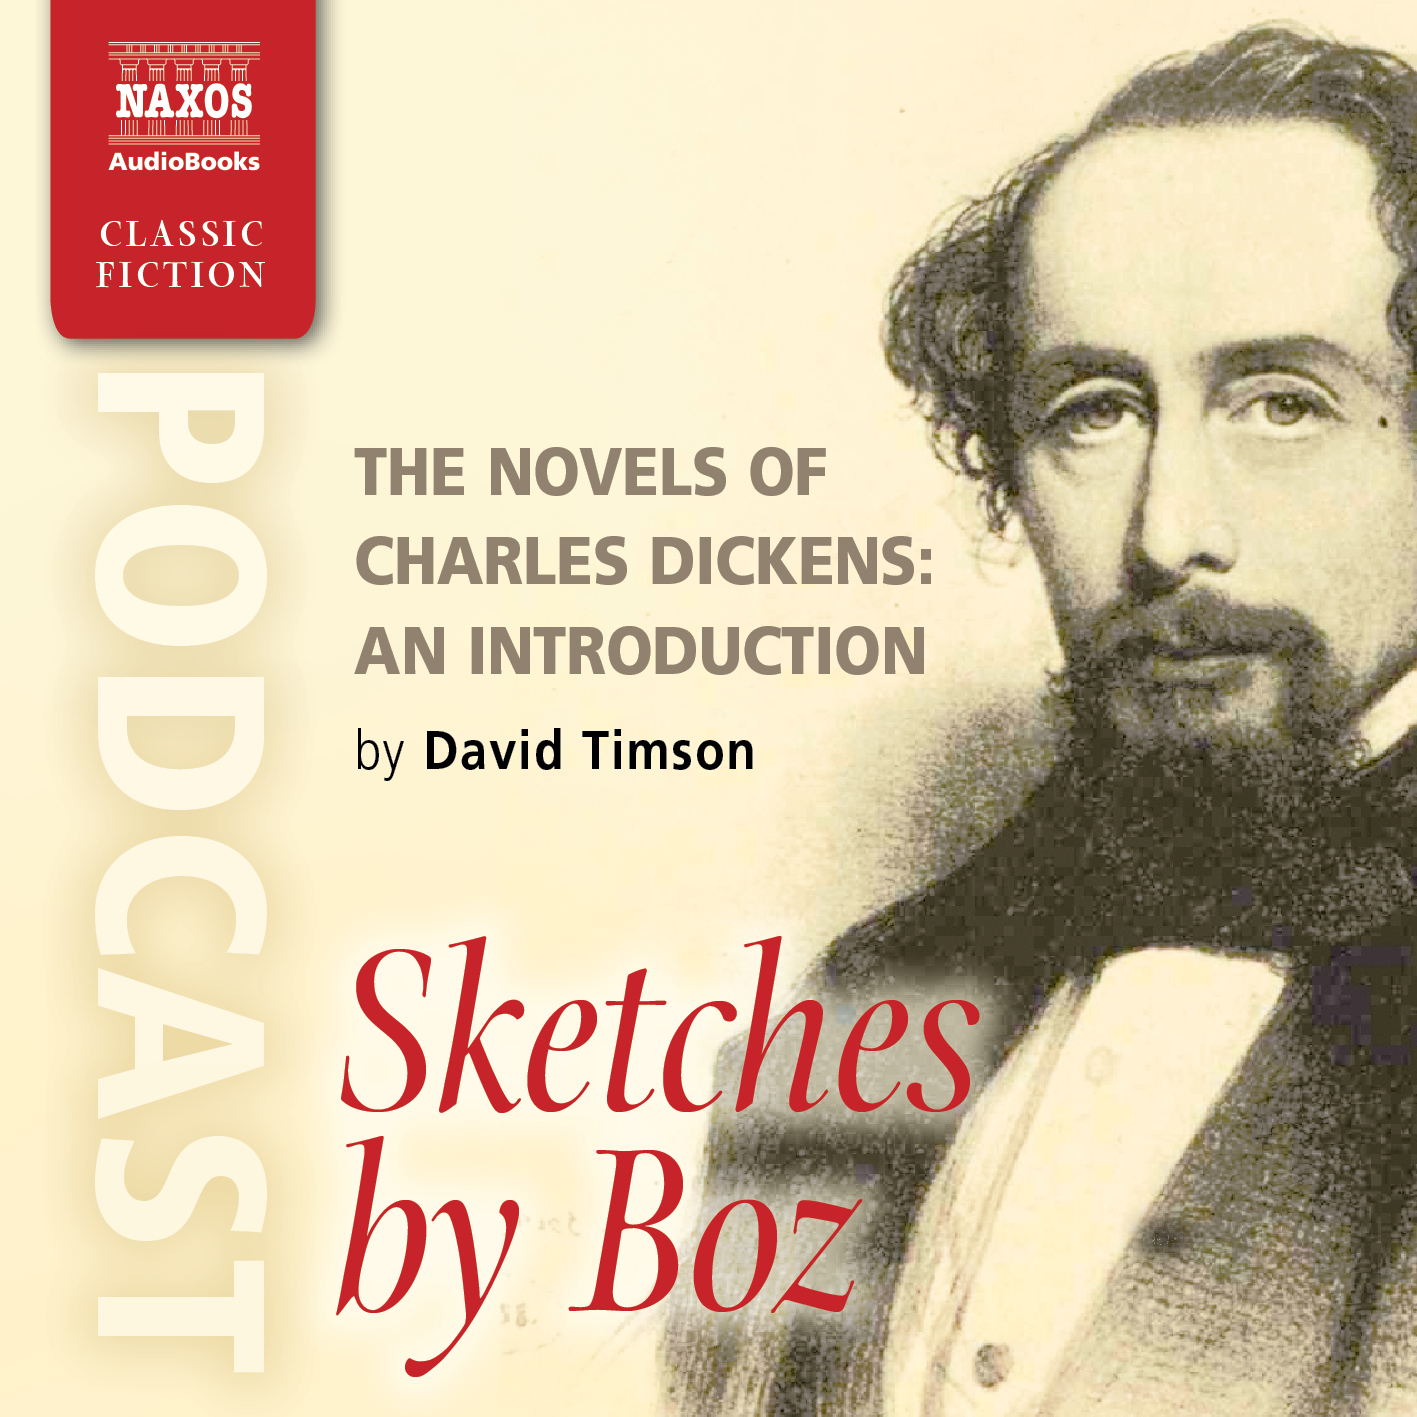 https://naxosaudiobooks.com/wp-content/uploads/2019/08/NA0398_Sketches_by_Boz_Podcast.jpg